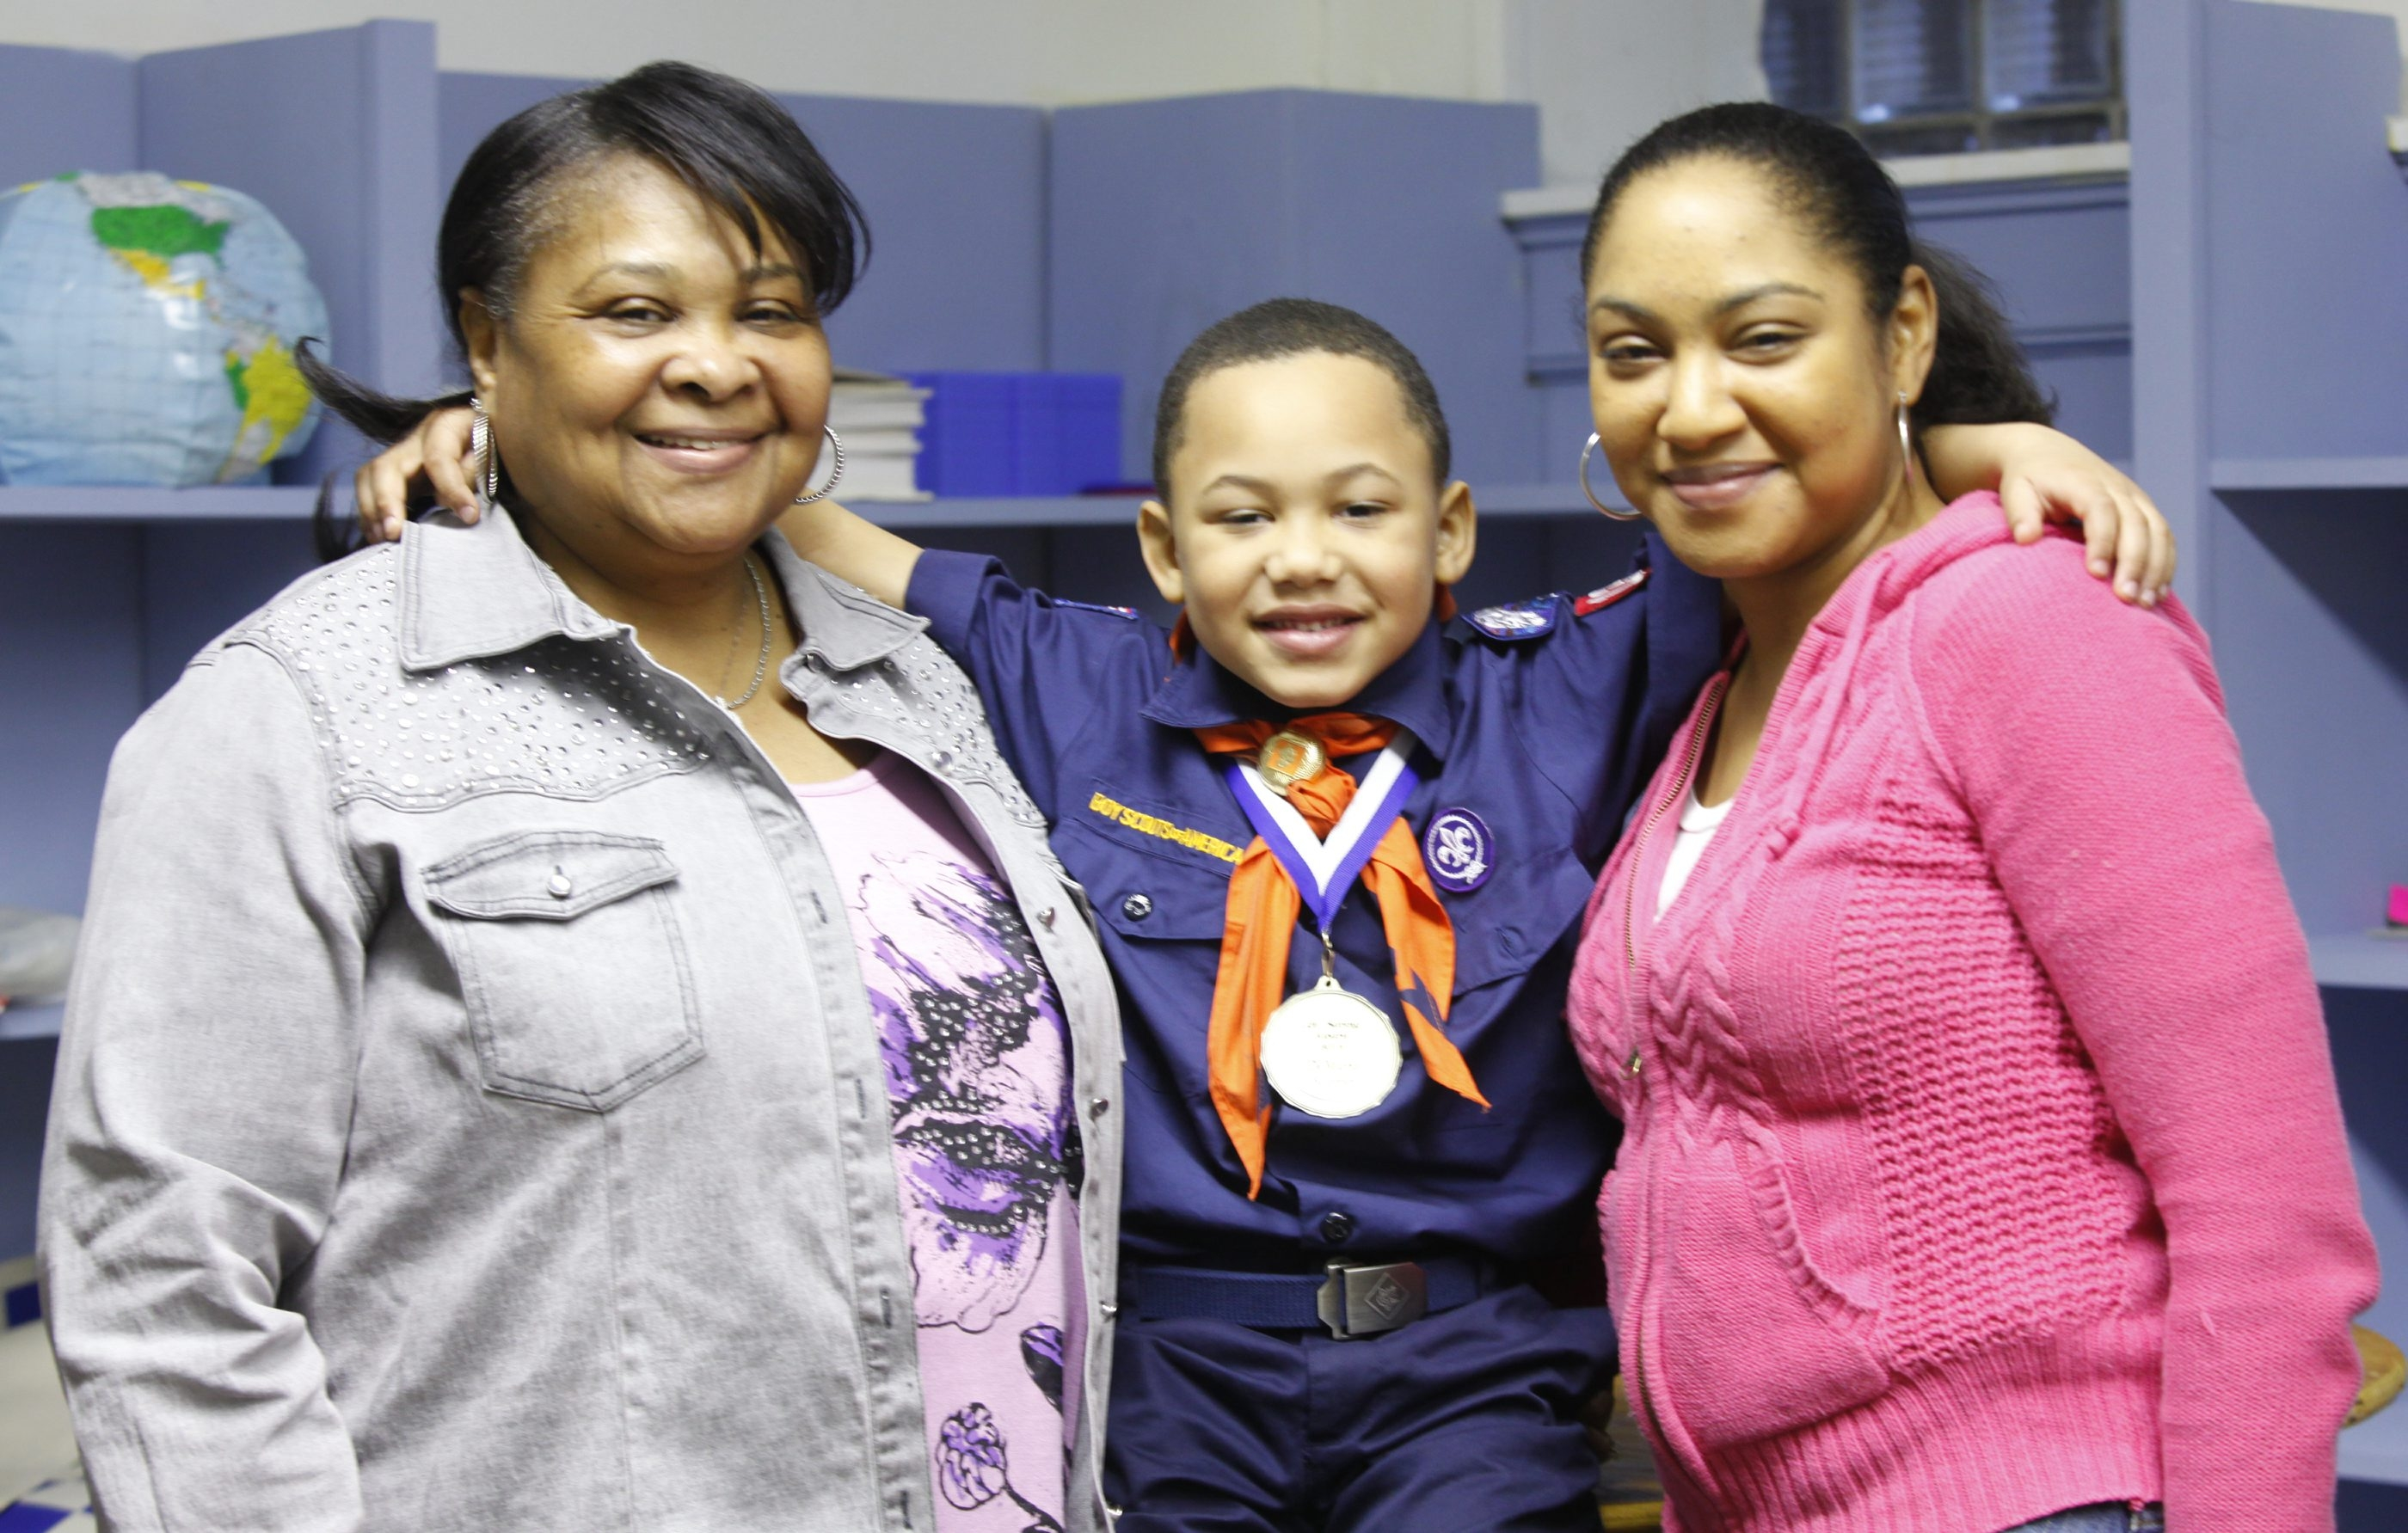 Cub Scout DeMaris Scarver, center, shown with his mother, Dinesha Scarver, right, and his grandmother Diane Scarver, was presented with his troop's 2013 Lifesaving Award recently.